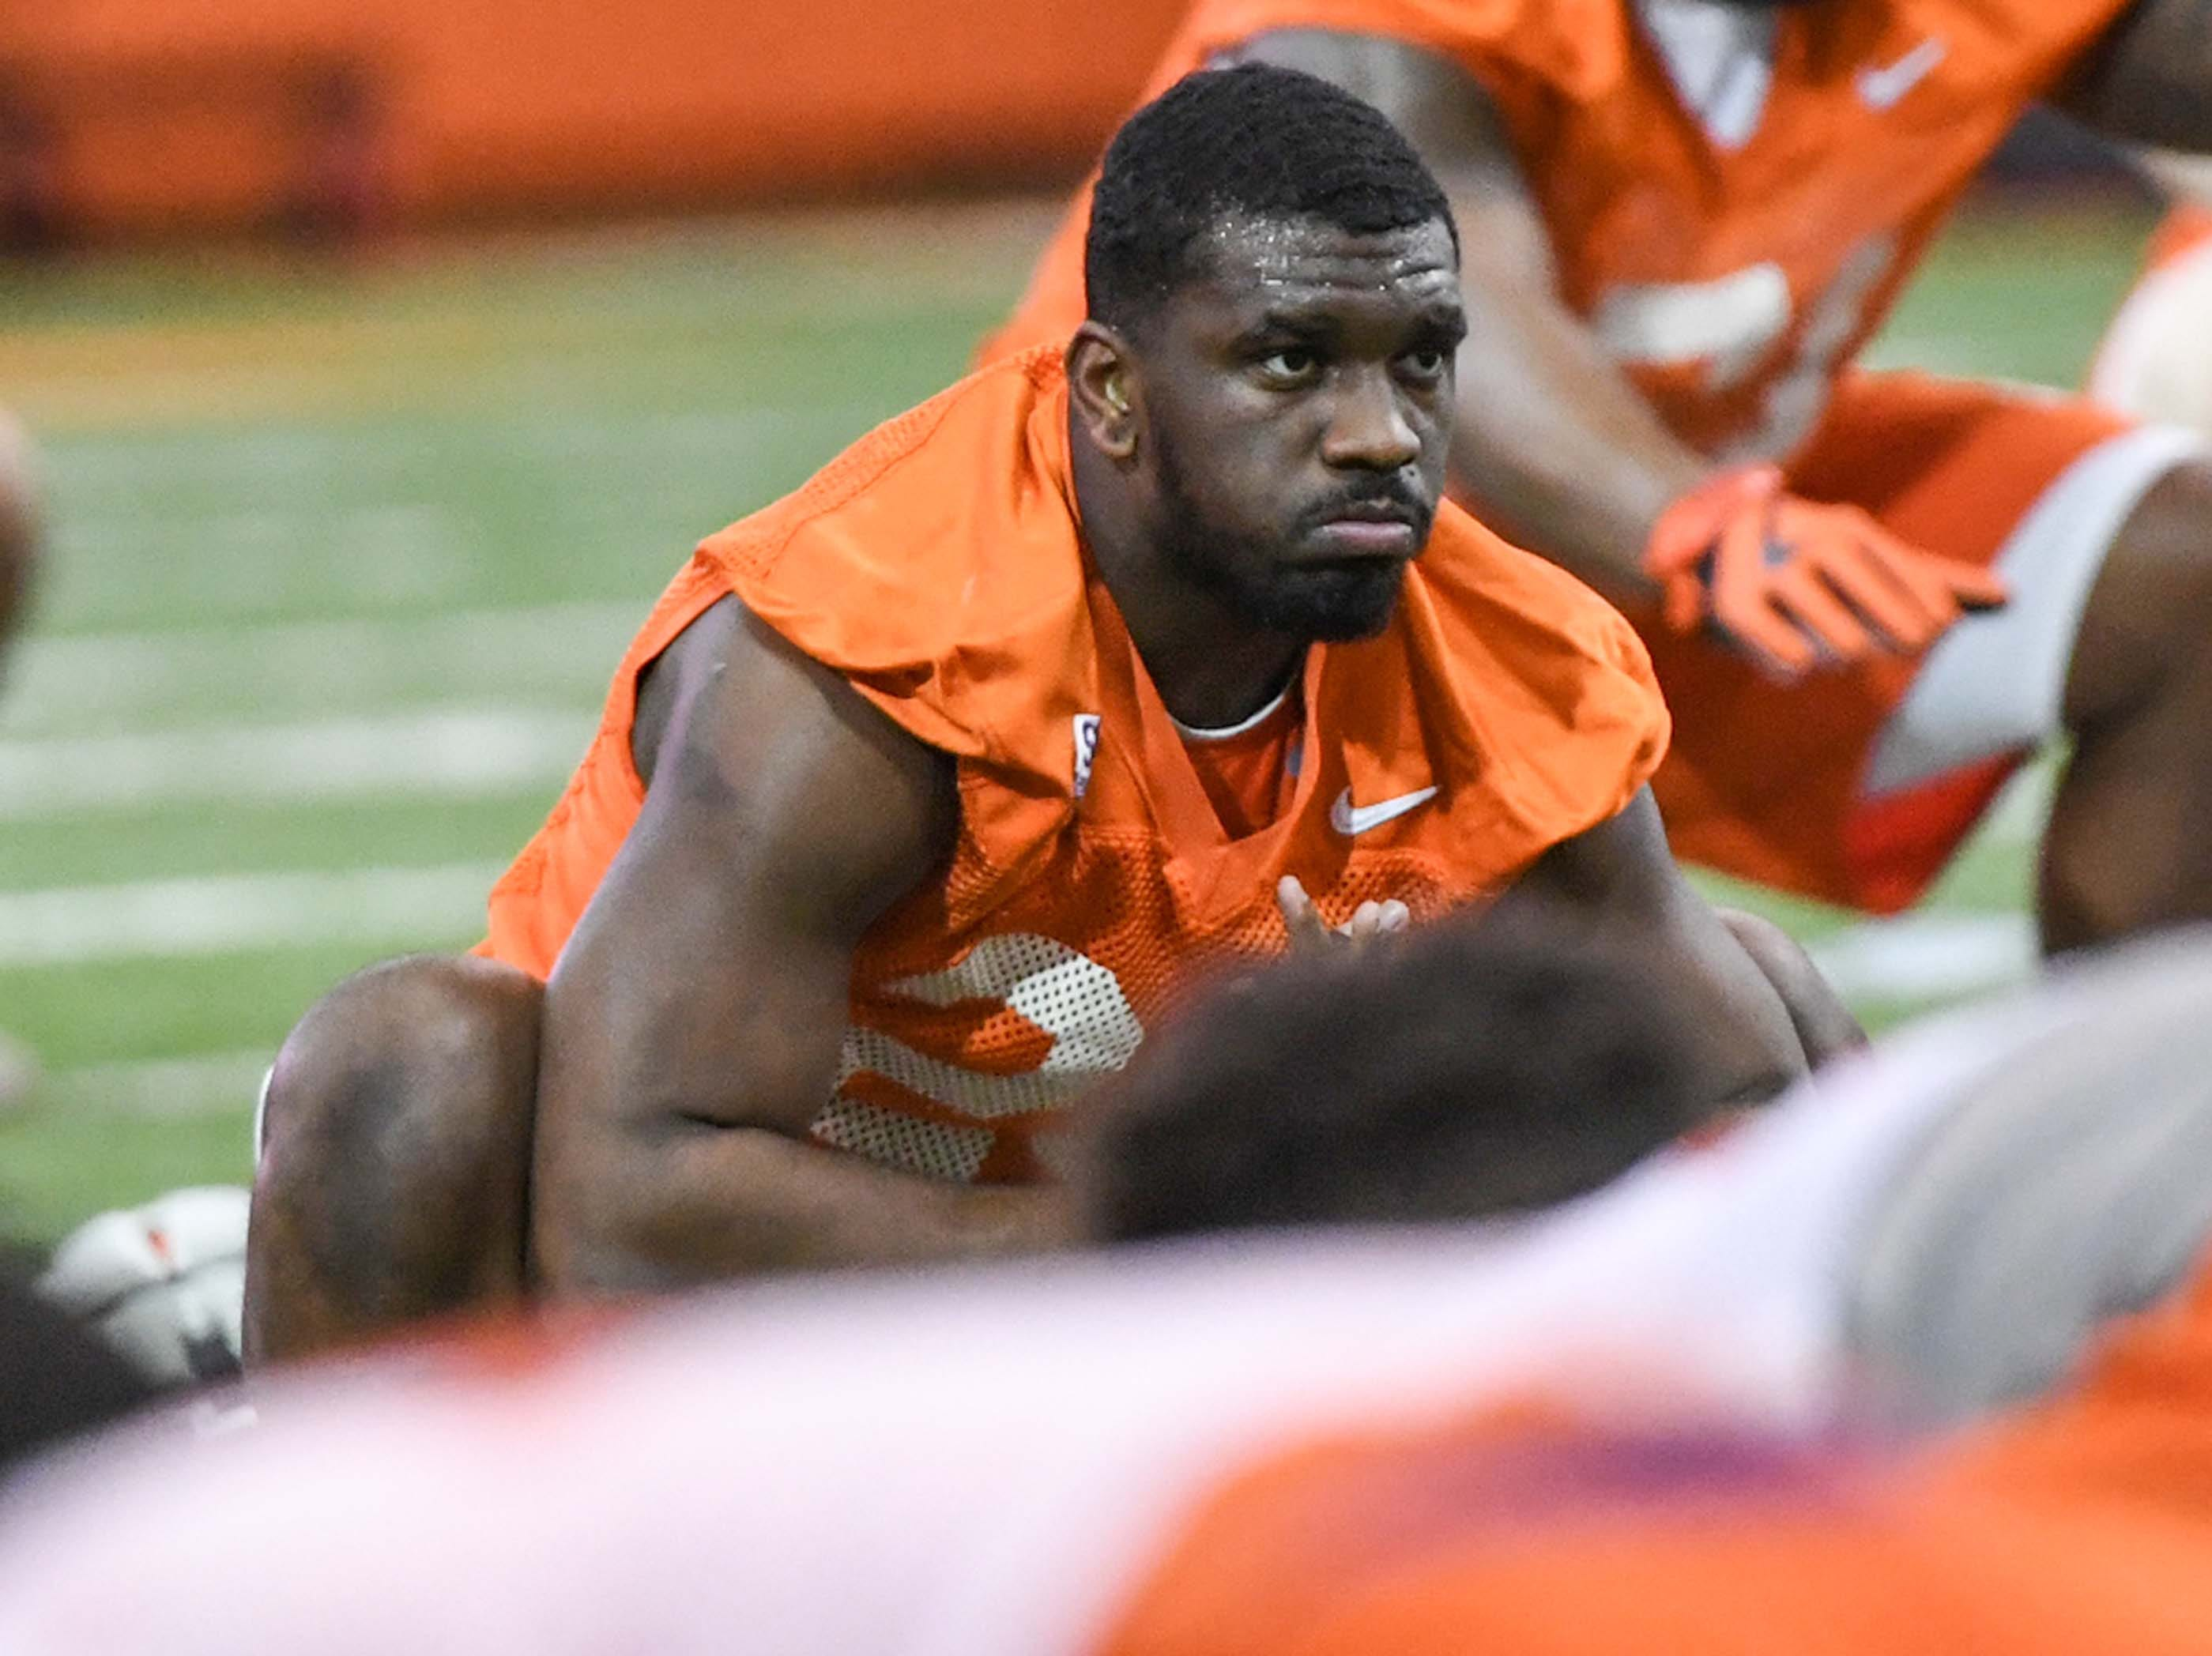 Clemson running back Tavien Feaster (28) stretches during practice at the Poe Indoor Facility in Clemson Friday.